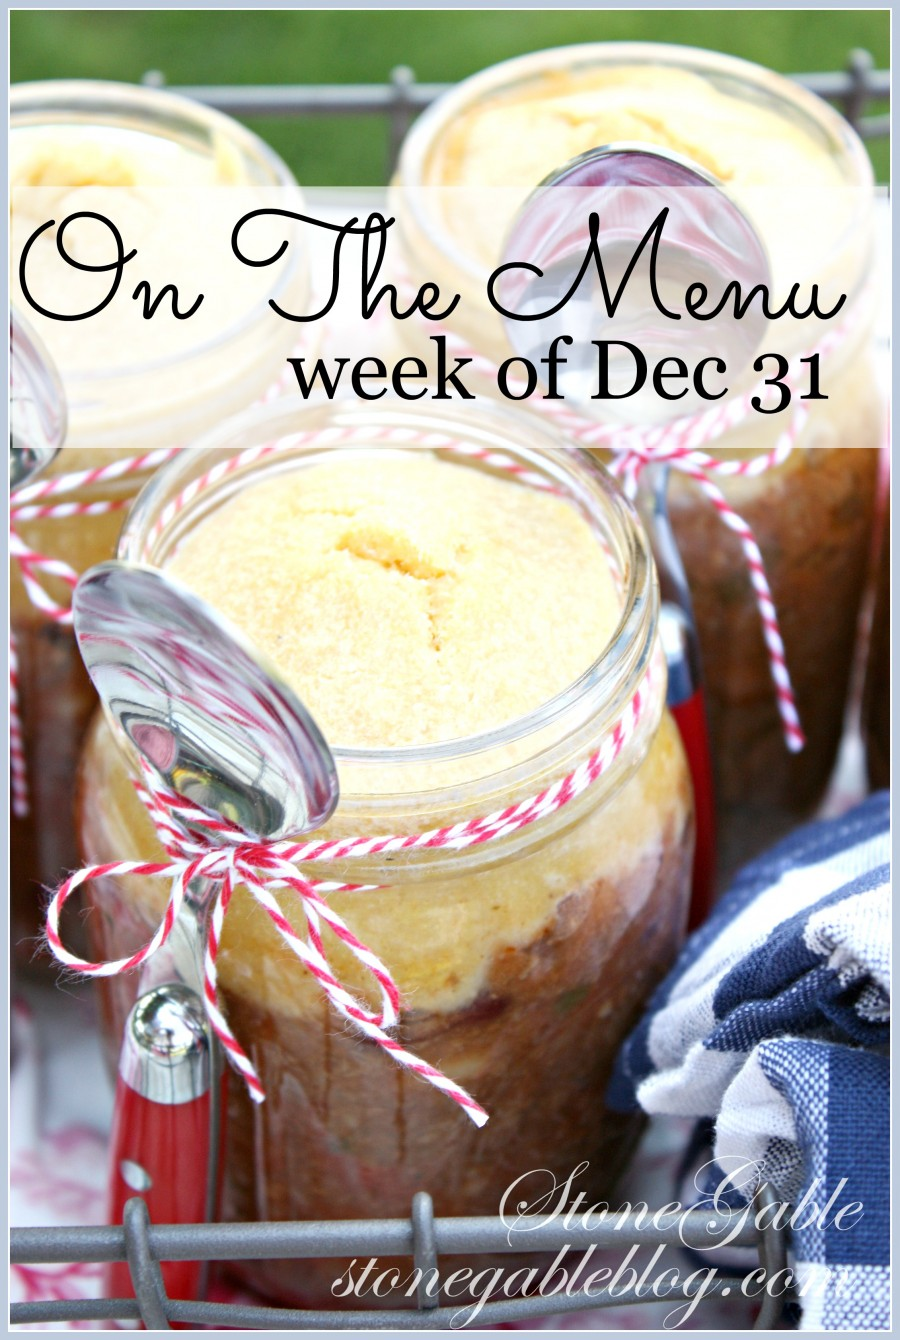 ON THE MENU- A week's worth of scrumptious recipes. I'll do the planning for you!